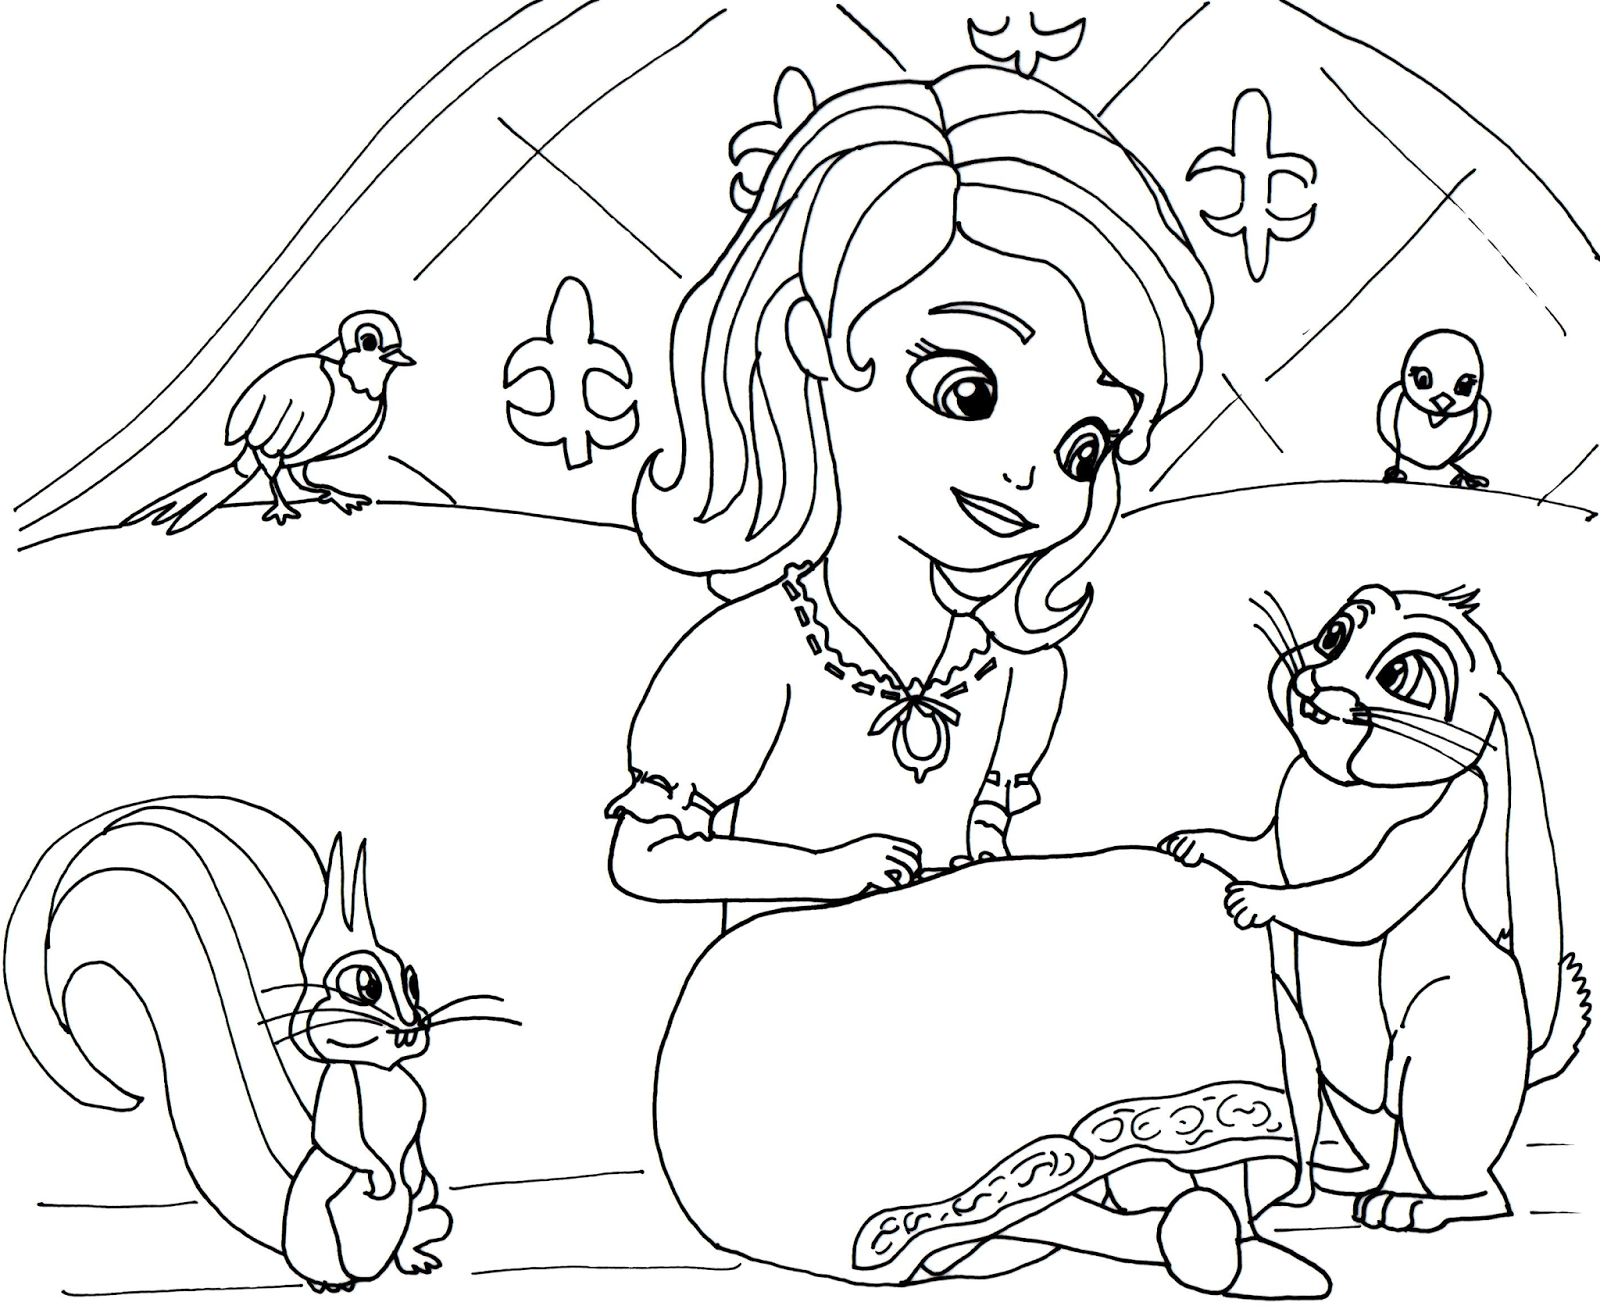 sofia the first coloring page-1